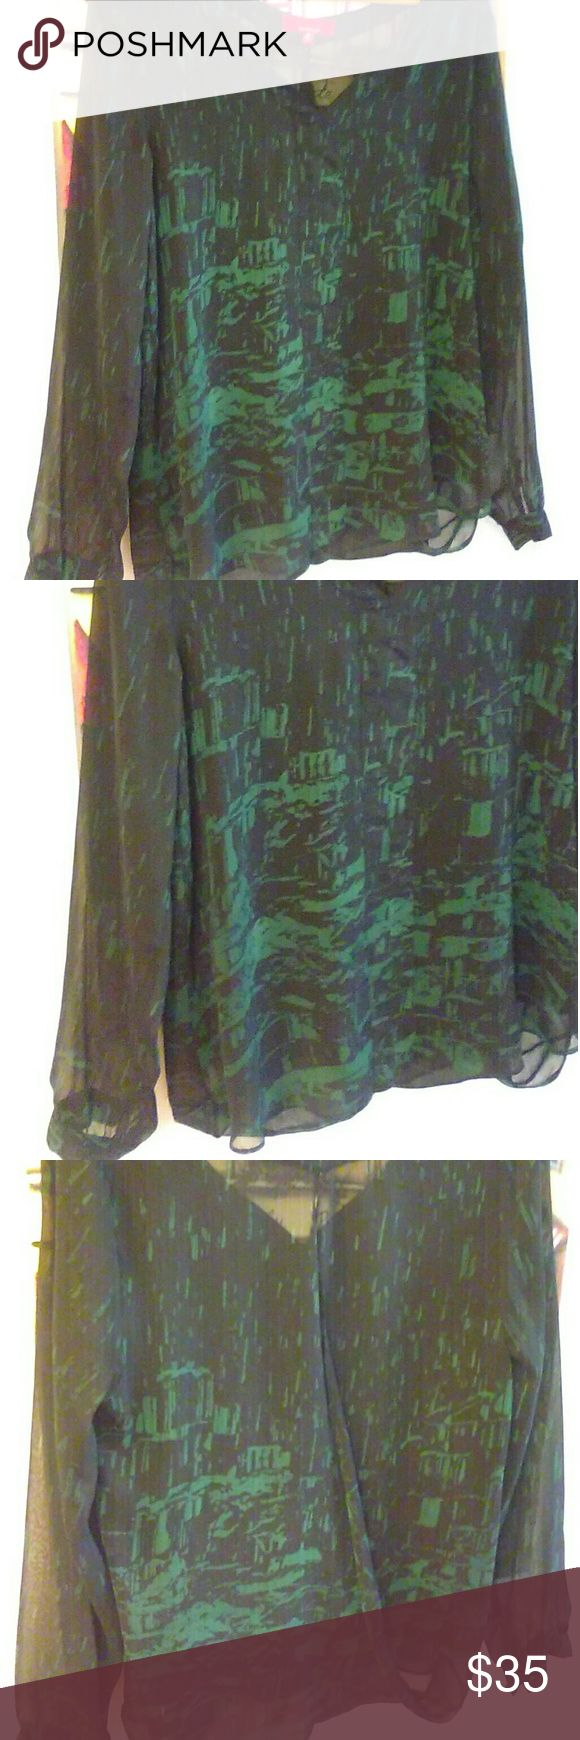 Sale!! Black & Green sheer lined open back blouse NWOT  Lined body, sheer long sleeves with one button. V neckline, open back depending on how you wear it.  Front is lined, back is sheer. New with no tags.  Brand is RED by Saks Saks Fifth Avenue Tops Blouses